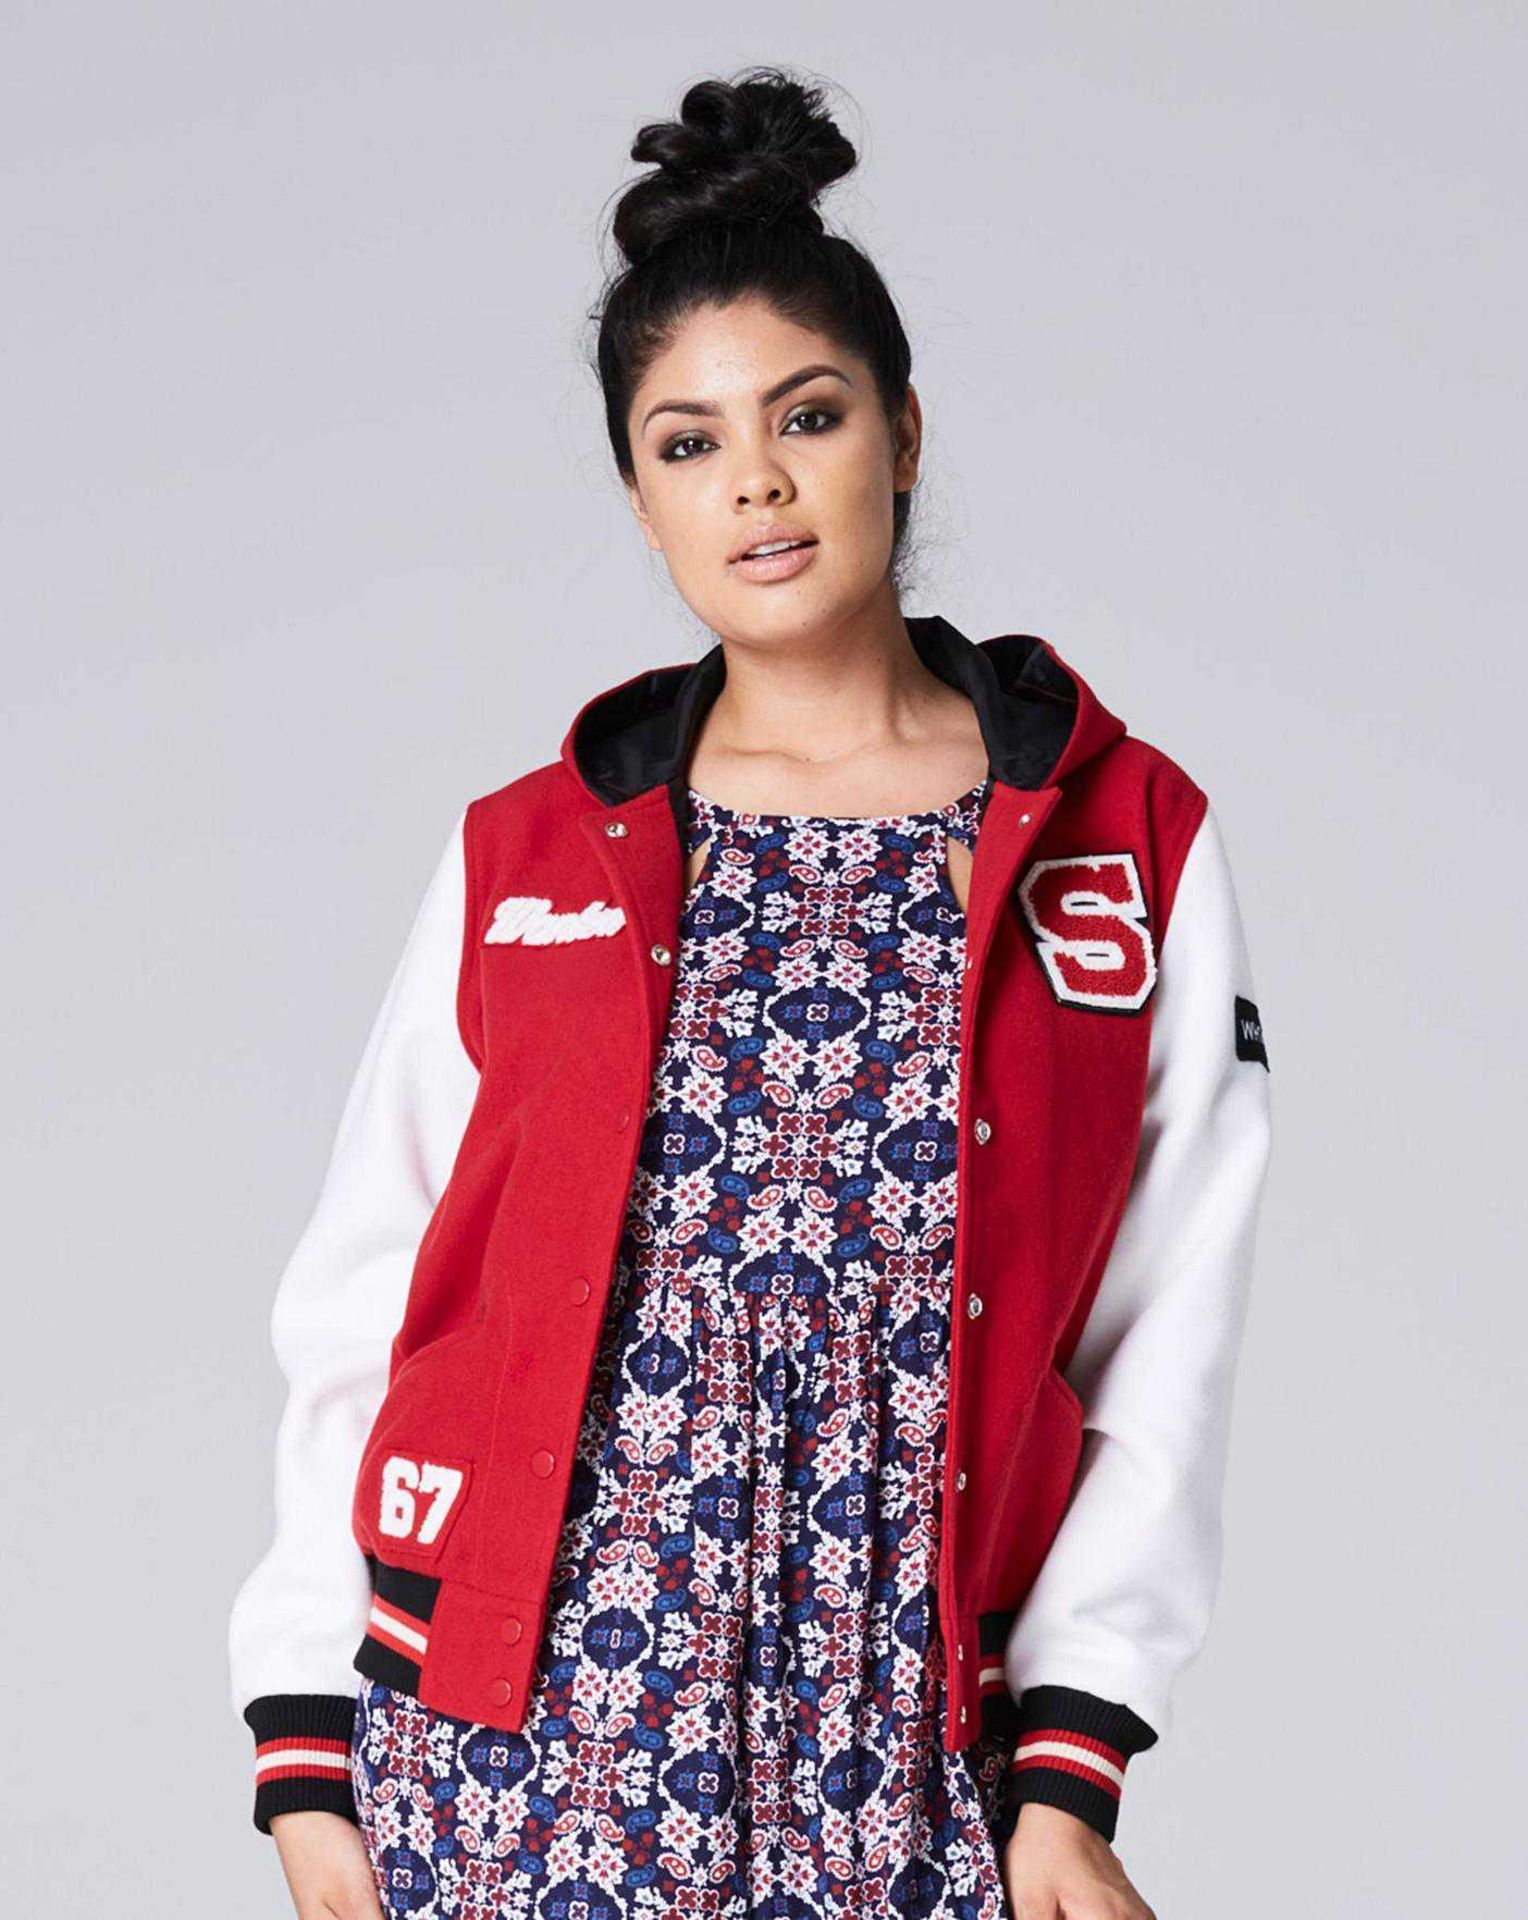 Rrp £270 Lot To Contain 9 Brand New Bagged/Tagged Women'S Size 18 Henna Wanted Who Cares Varsity - Image 2 of 3